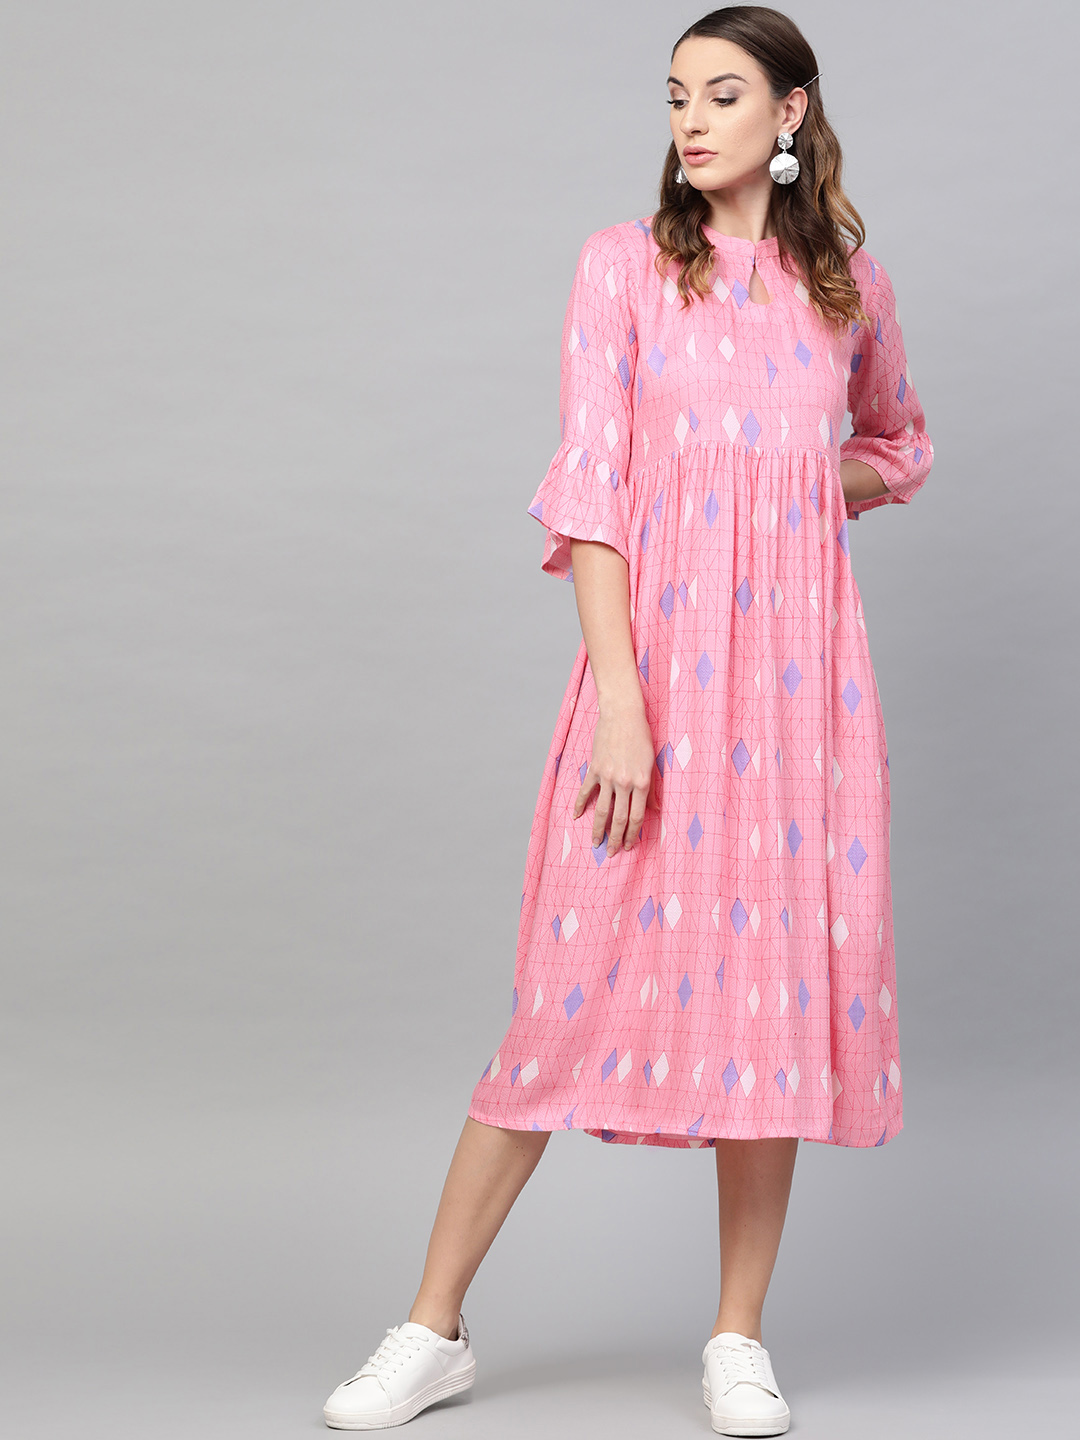 GERUA Women Pink Printed Midi Empire Dress Price in India